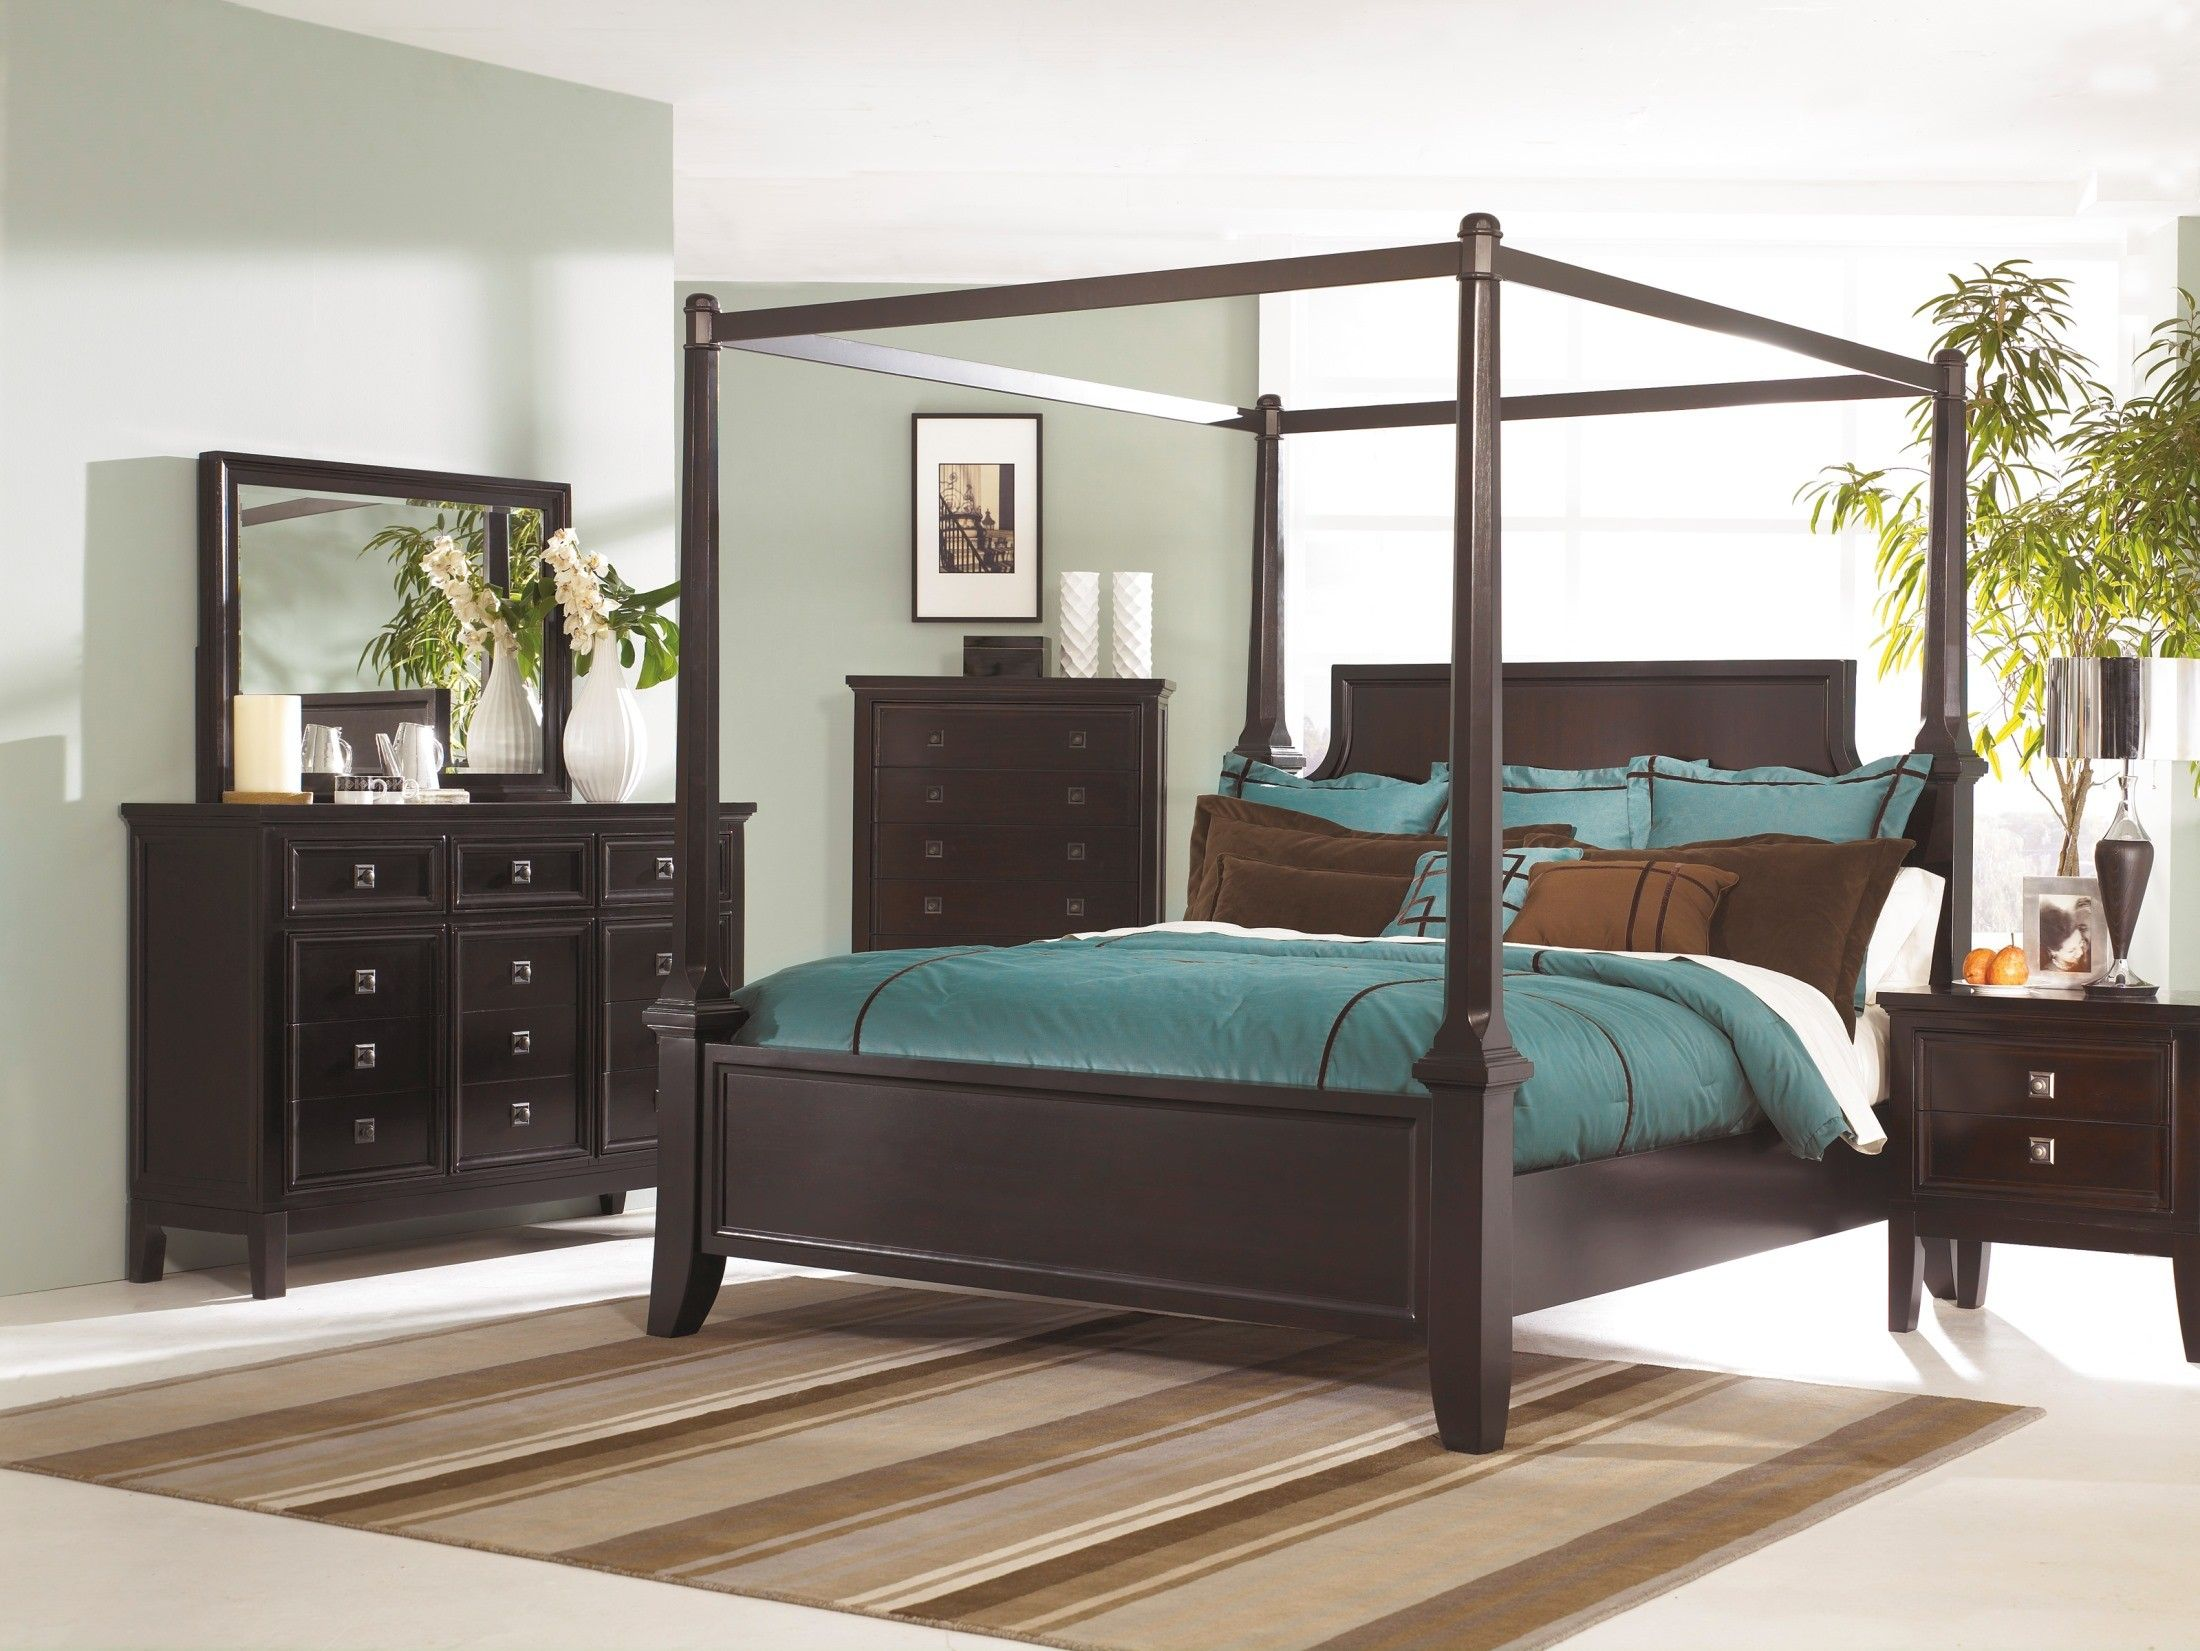 Martini Suite Poster Bedroom Set Canopy Bedroom Sets Canopy Bedroom Bedroom Furniture Sets